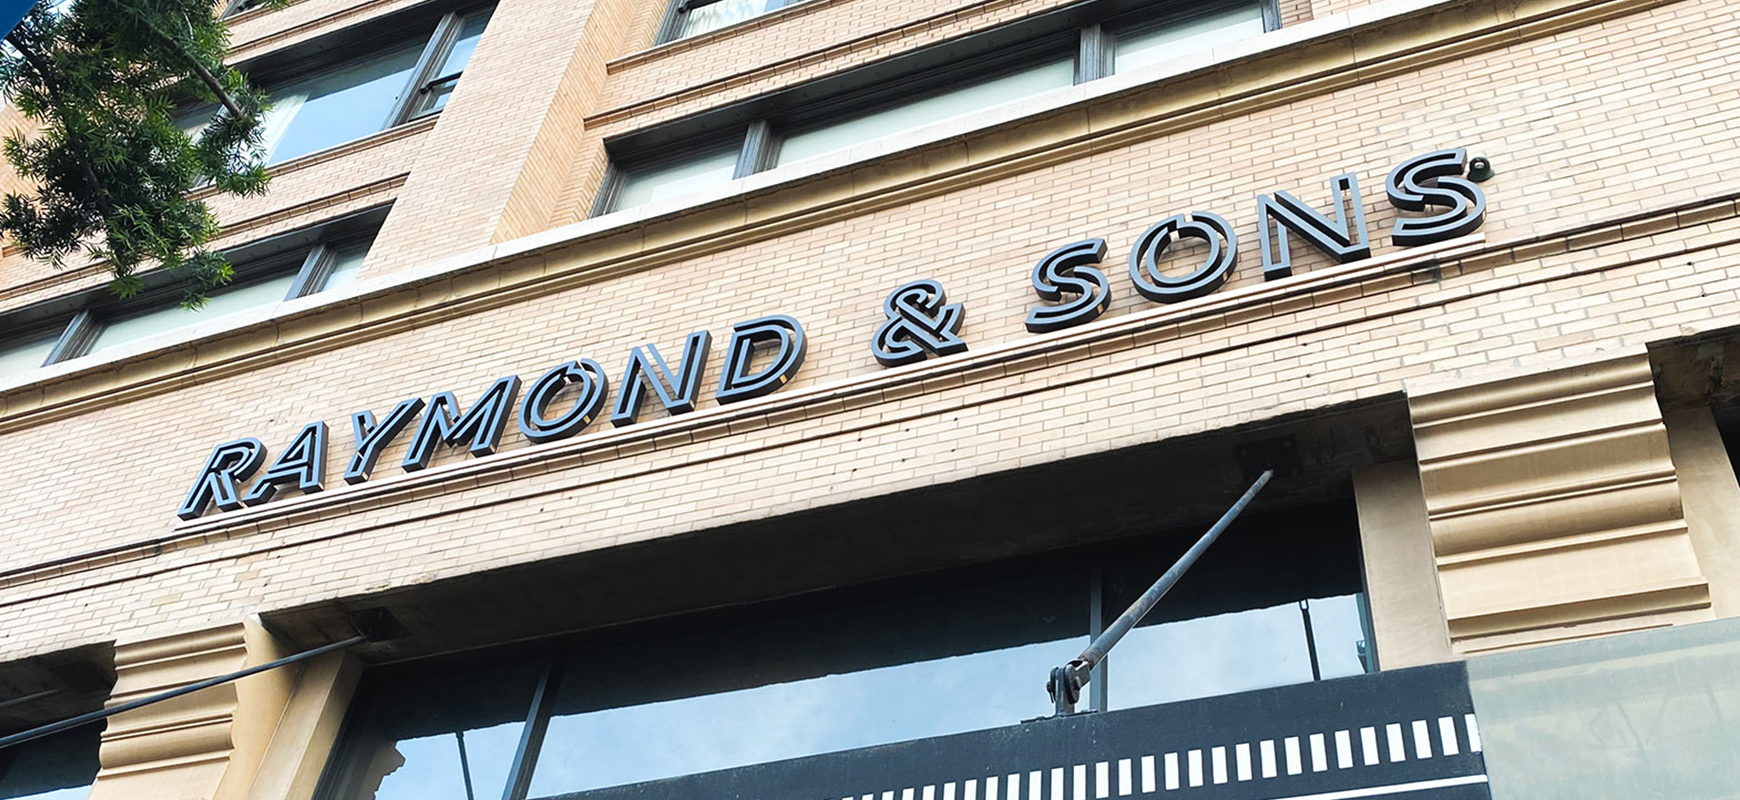 Raymond and Sons outdoor architectural signage made of aluminum for storefront branding